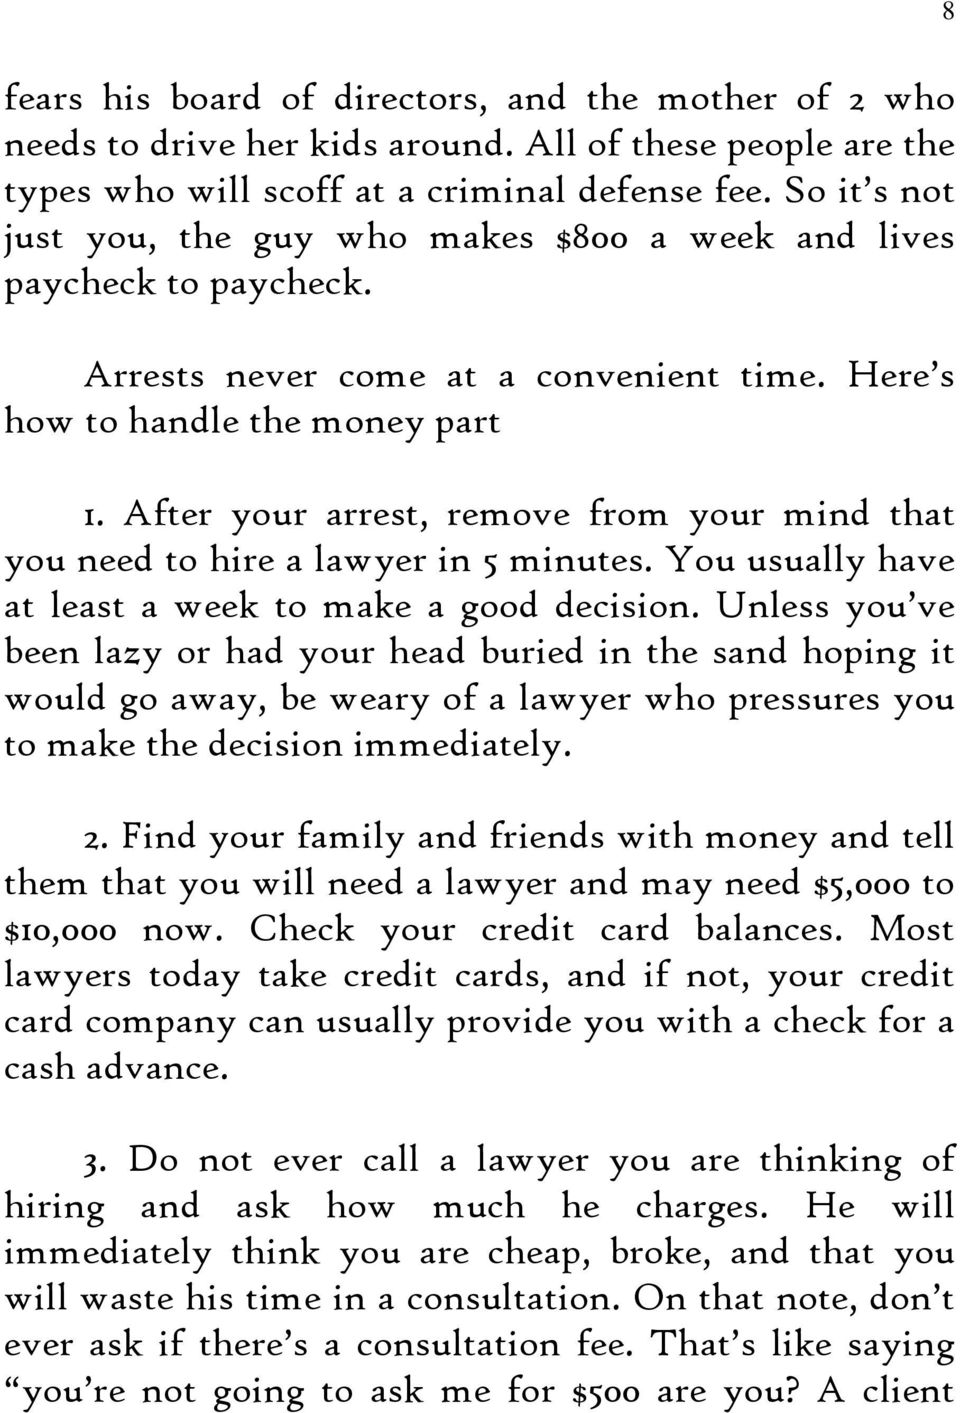 After your arrest, remove from your mind that you need to hire a lawyer in 5 minutes. You usually have at least a week to make a good decision.